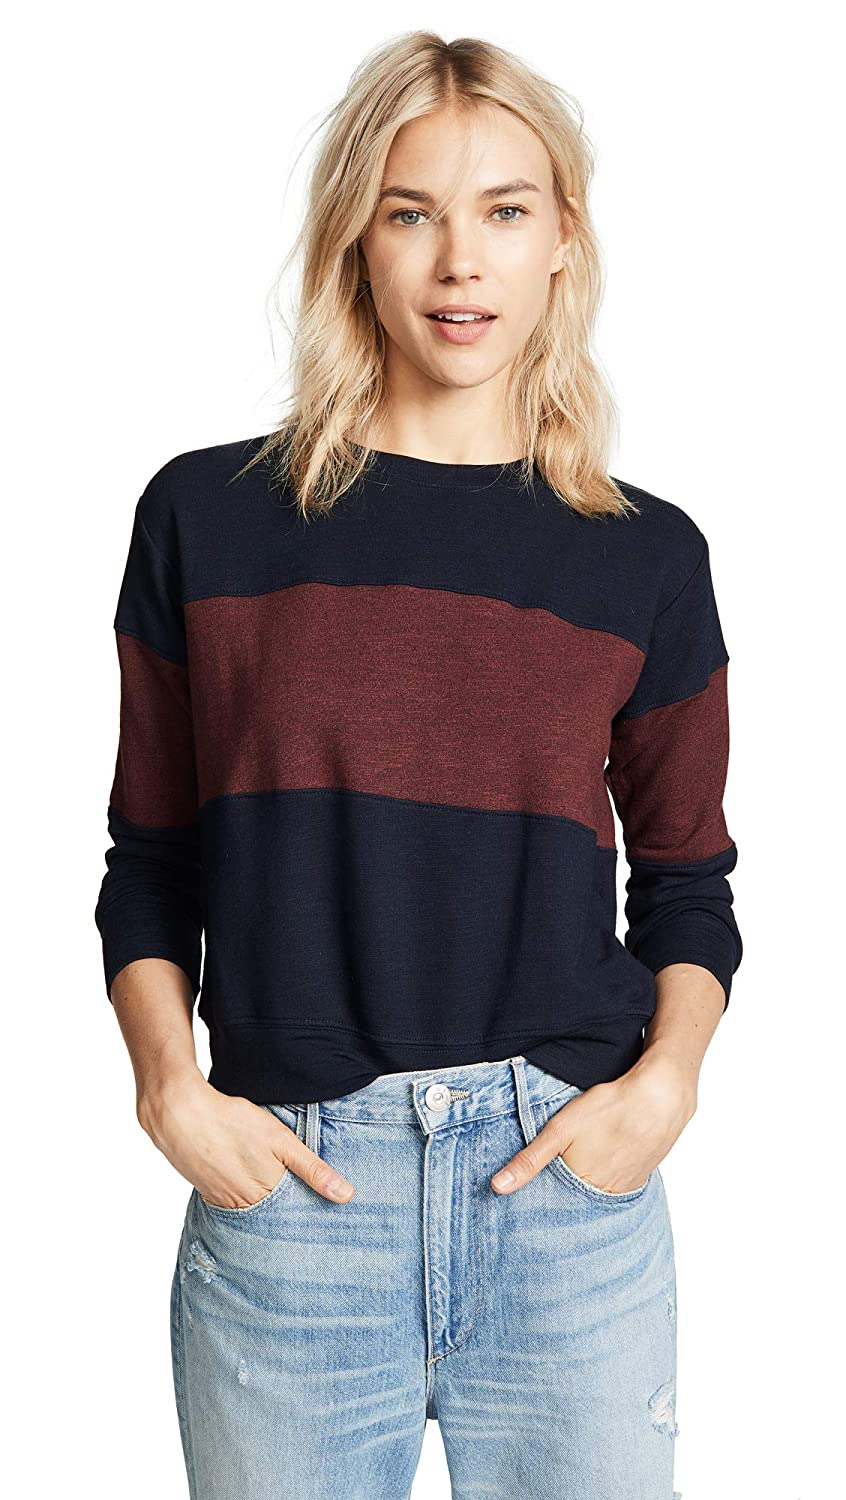 SUNDRY Women's Colorblocked Sweatshirt Midnight/Marsala 3